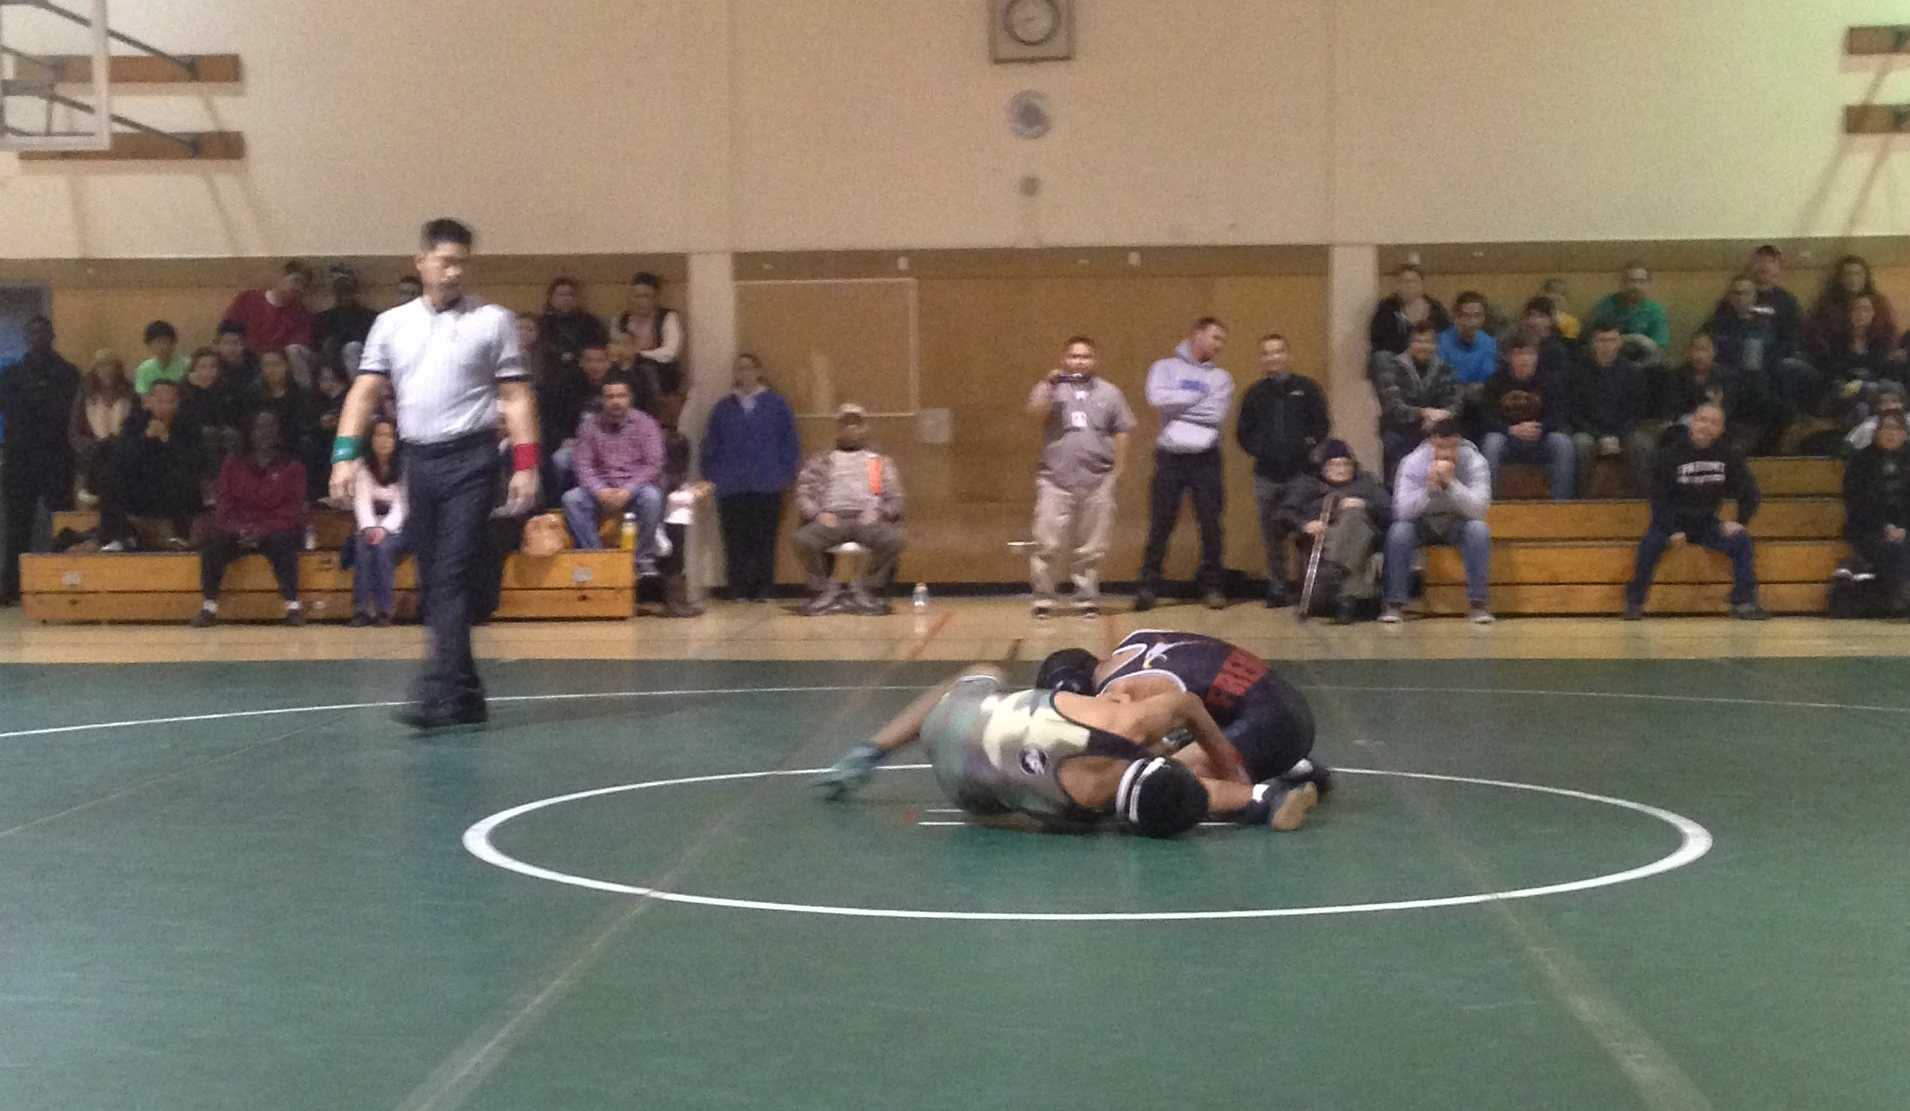 Seth Goyal ('17) wrestles with his Fremont opponent. Goyal went on to win his match 16-10.